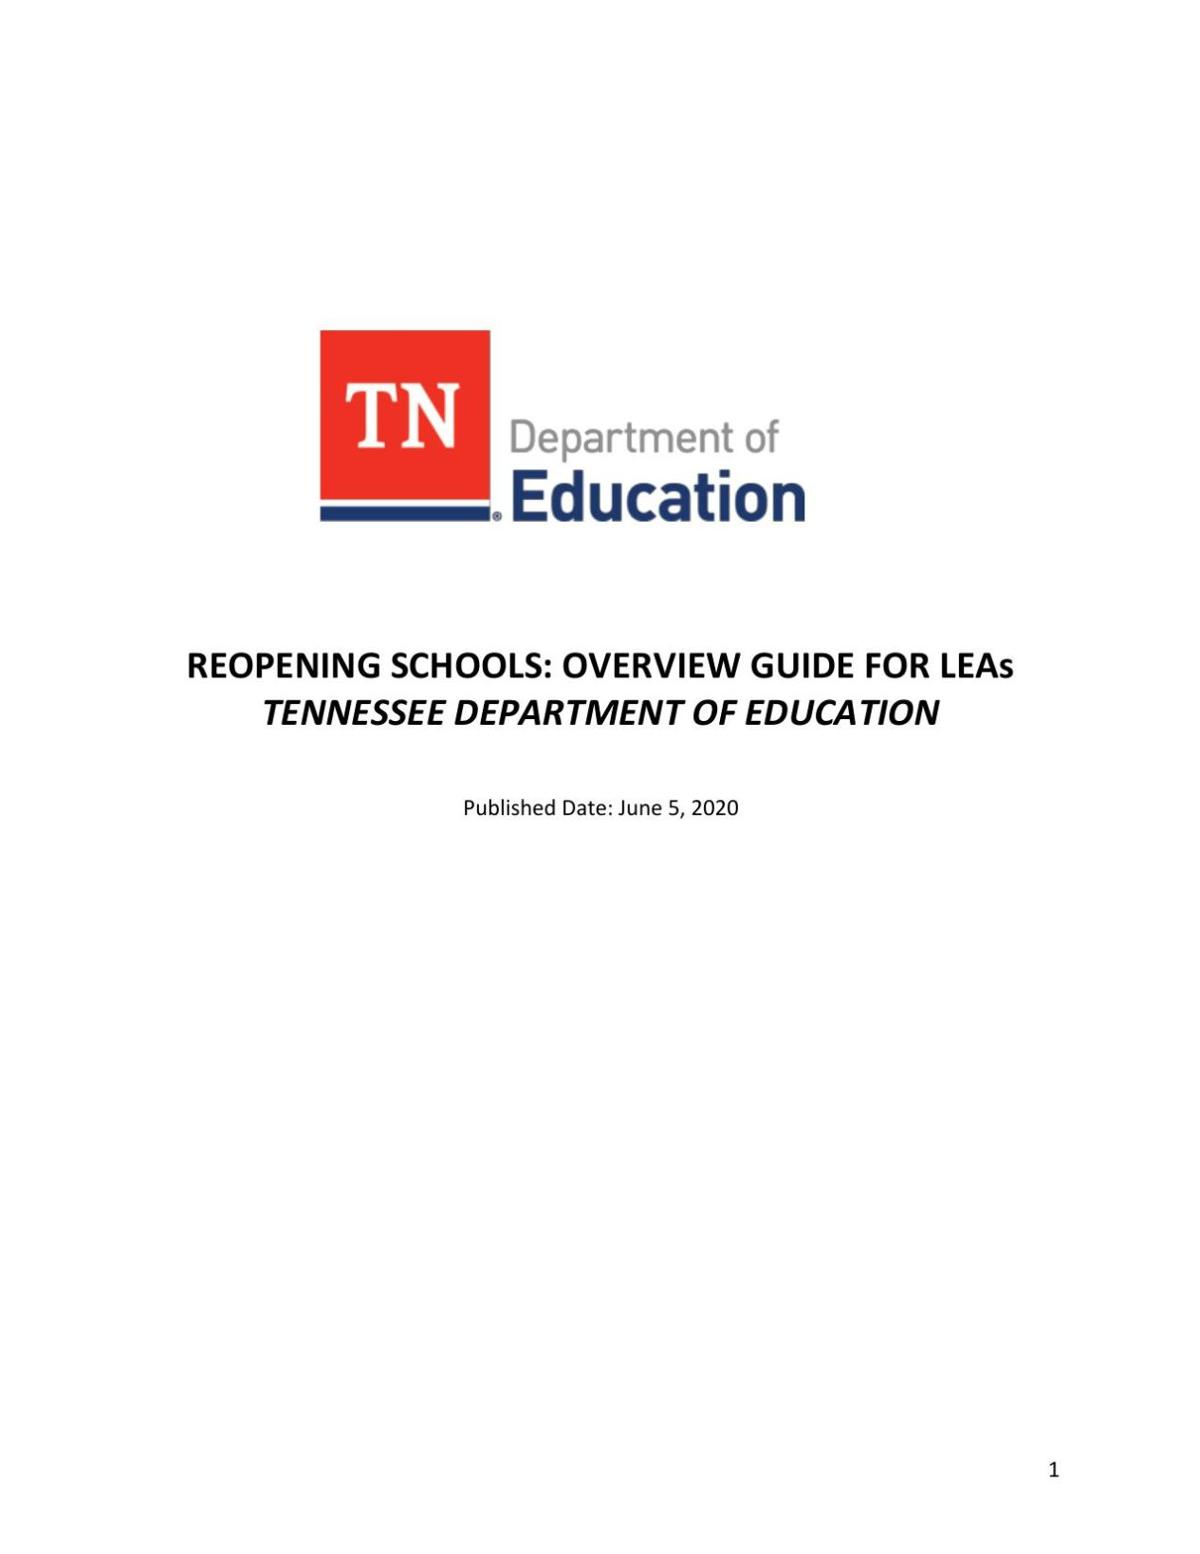 Reopening Schools - Overview Guide for LEAs